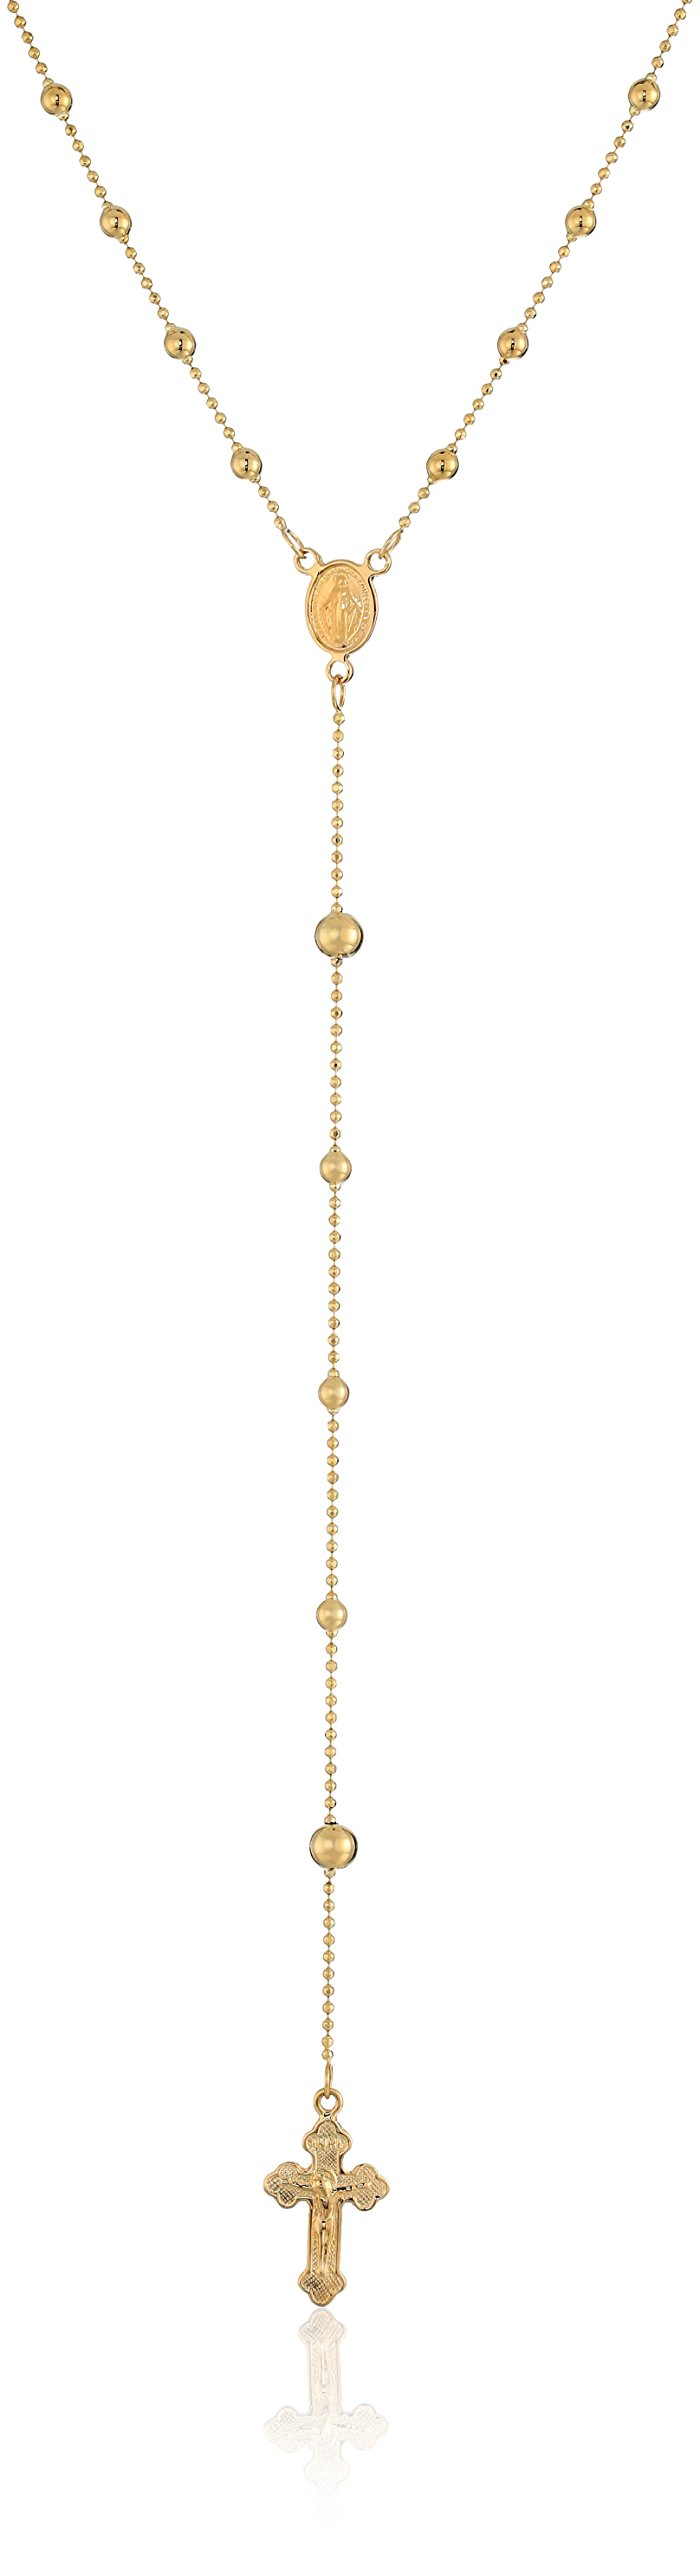 14k Yellow Gold Rosary Bead Necklace, 24''